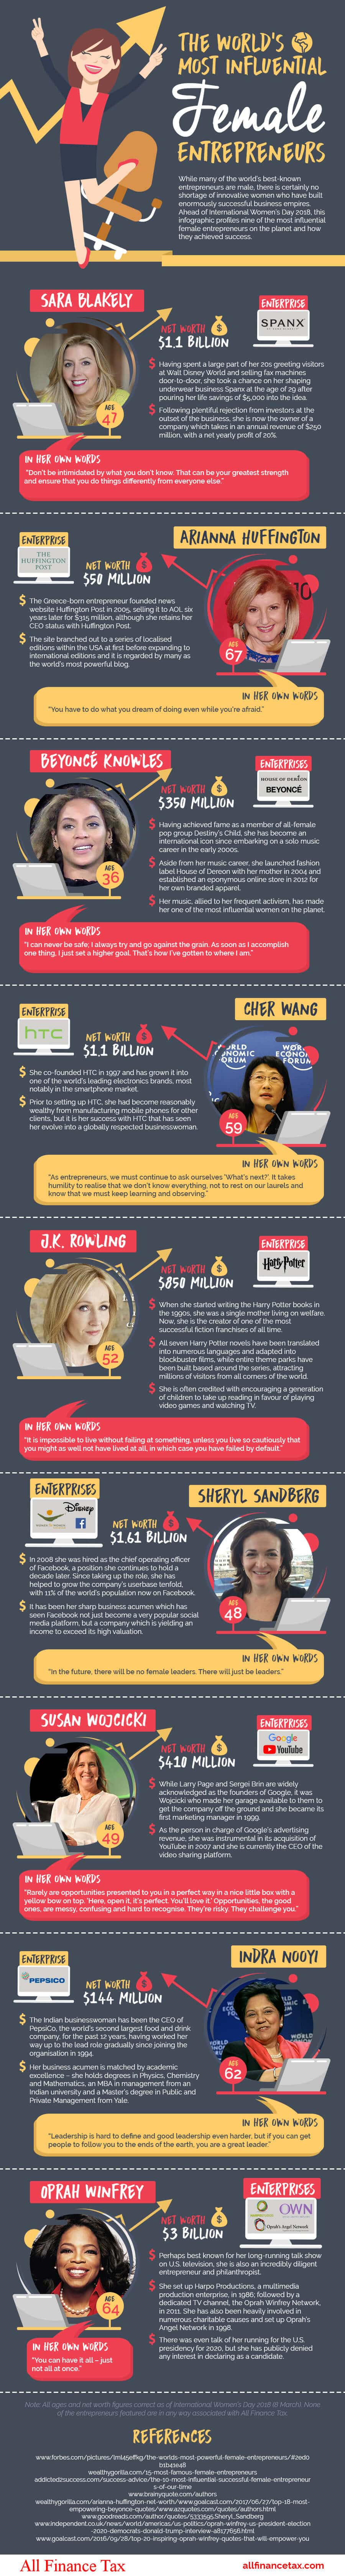 The World's Most Influential Female Entrepreneurs (INFOGRAPHIC)